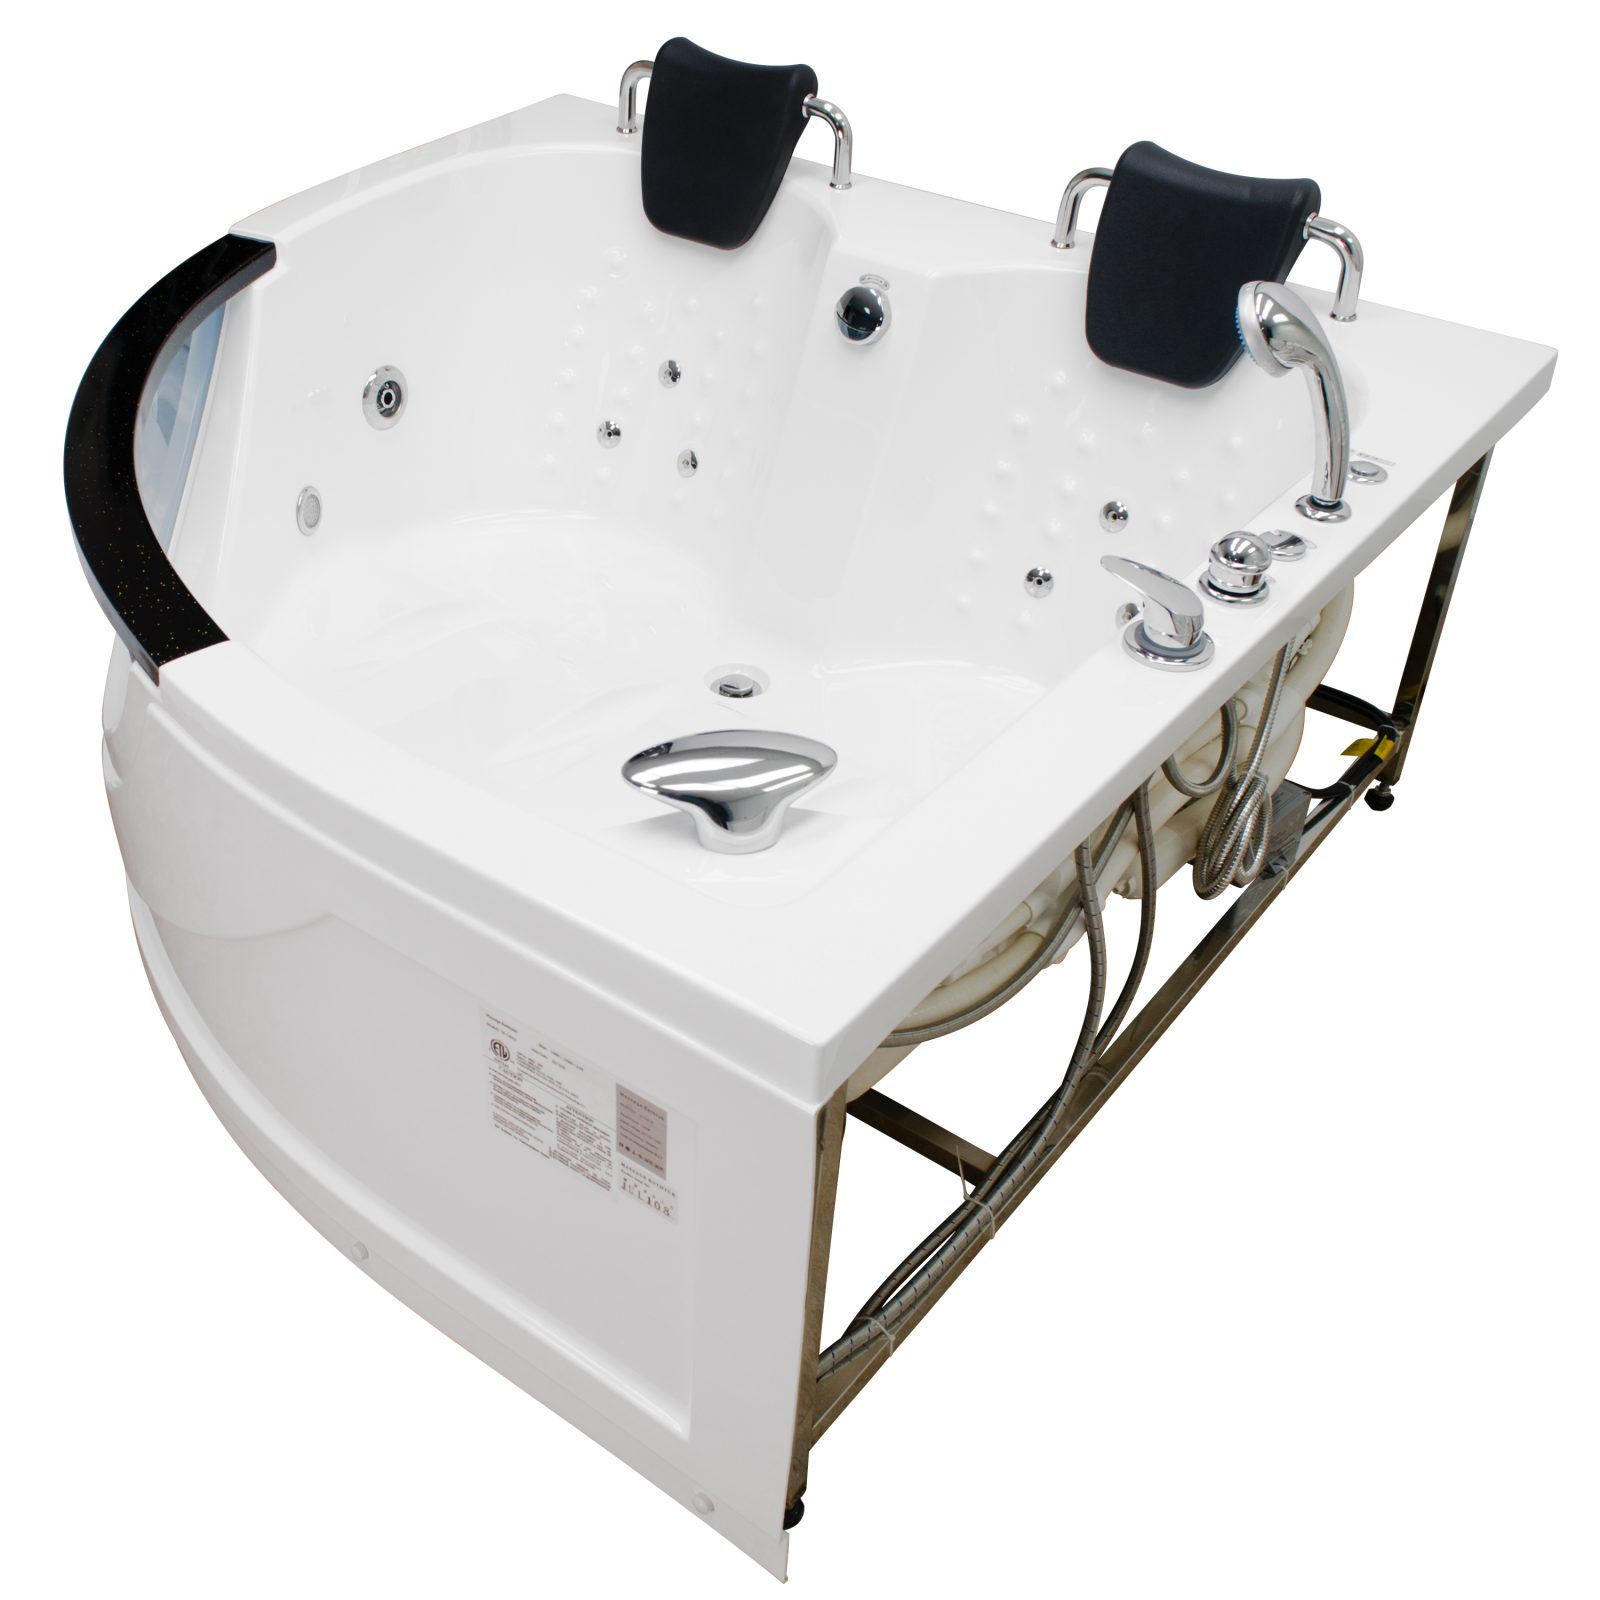 indoor new jetted s bathtub tub spa whirlpool person massage hydrotherapy hot p